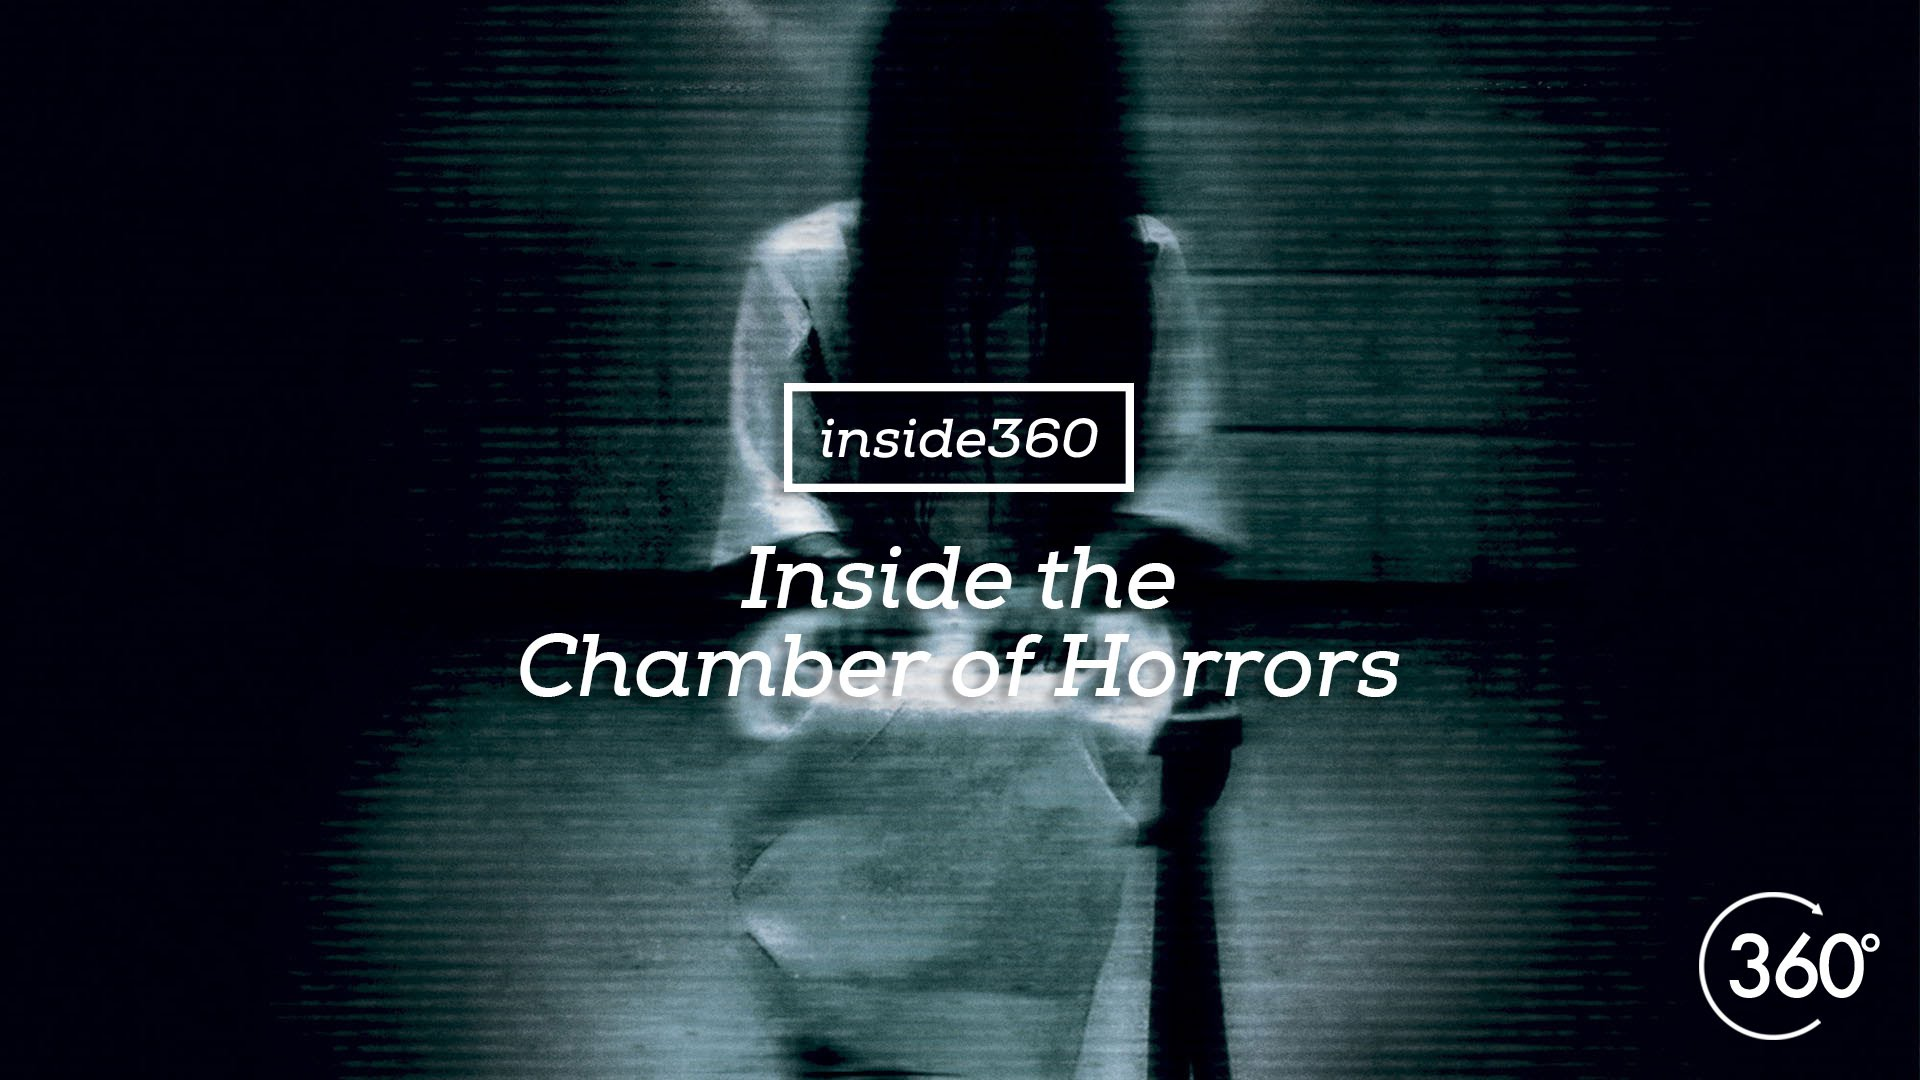 Inside the Chamber of Horrors